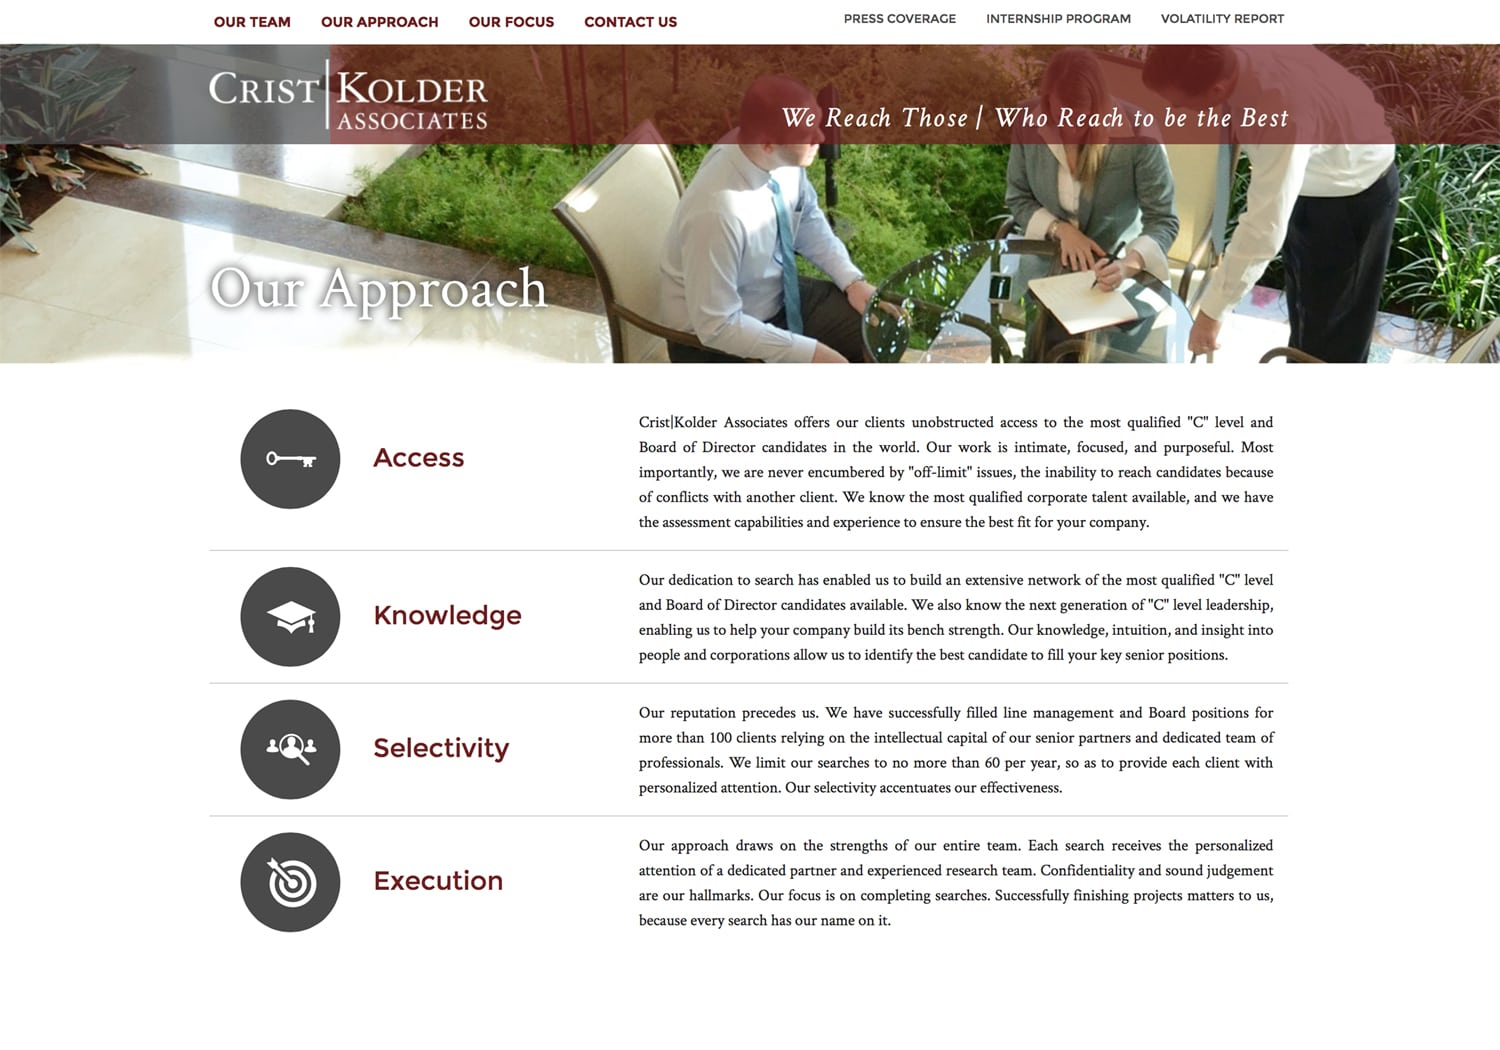 Web page for Crist Kolder Associates Our Approach page with photo of office workers in discussion around glass table with greenery behind Corporate Photography